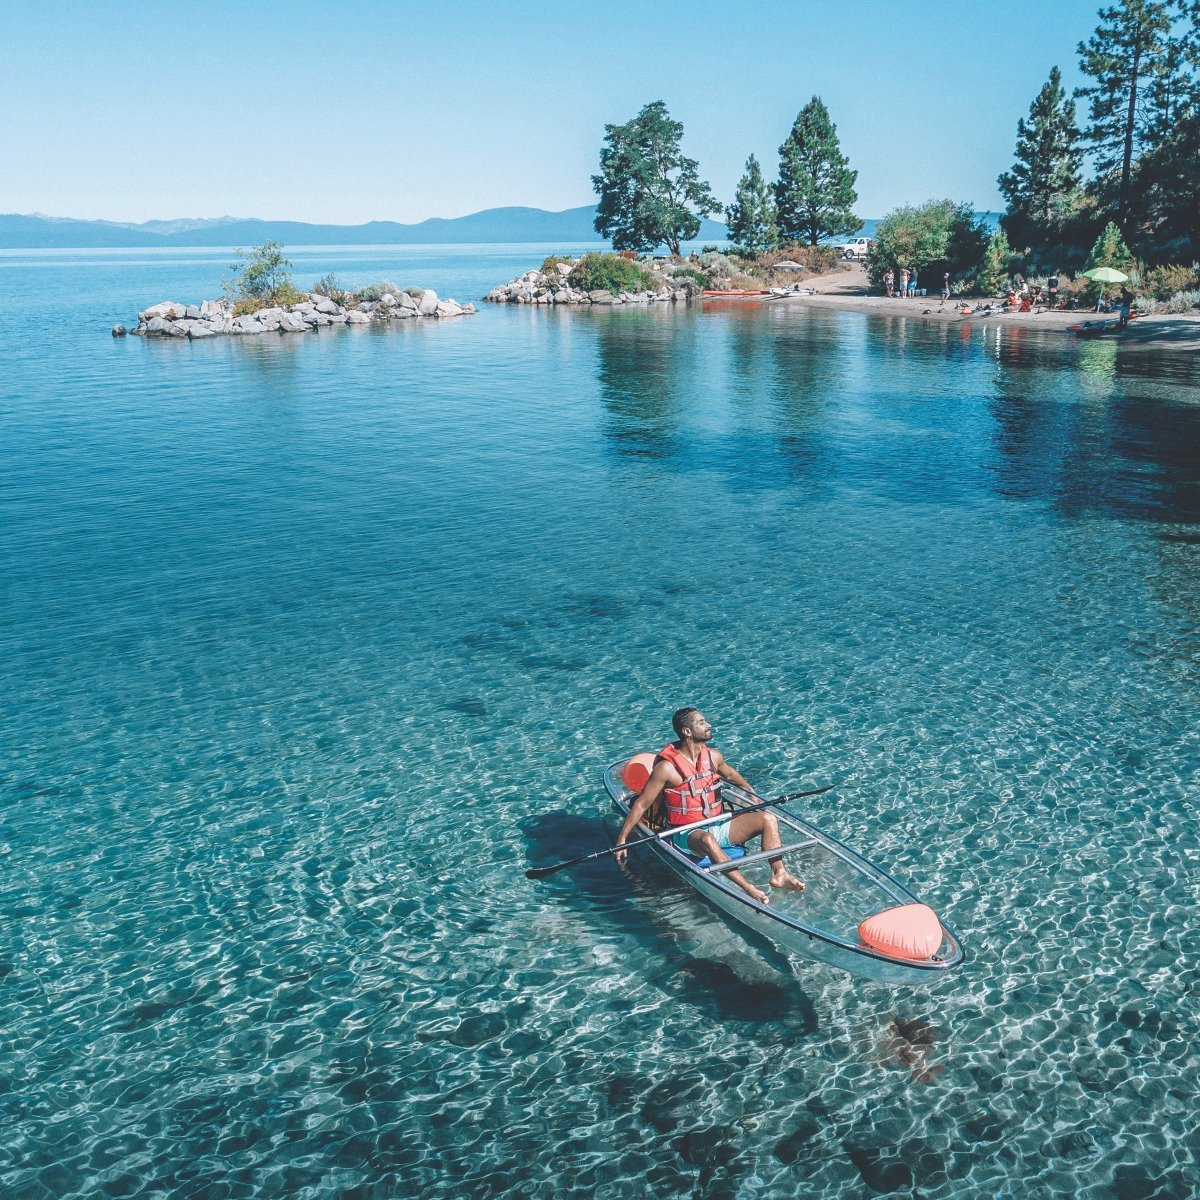 On a clear kayak, you can see forever—or at least 70 feet down into Lake Tahoe. (Photo by André De Mello)